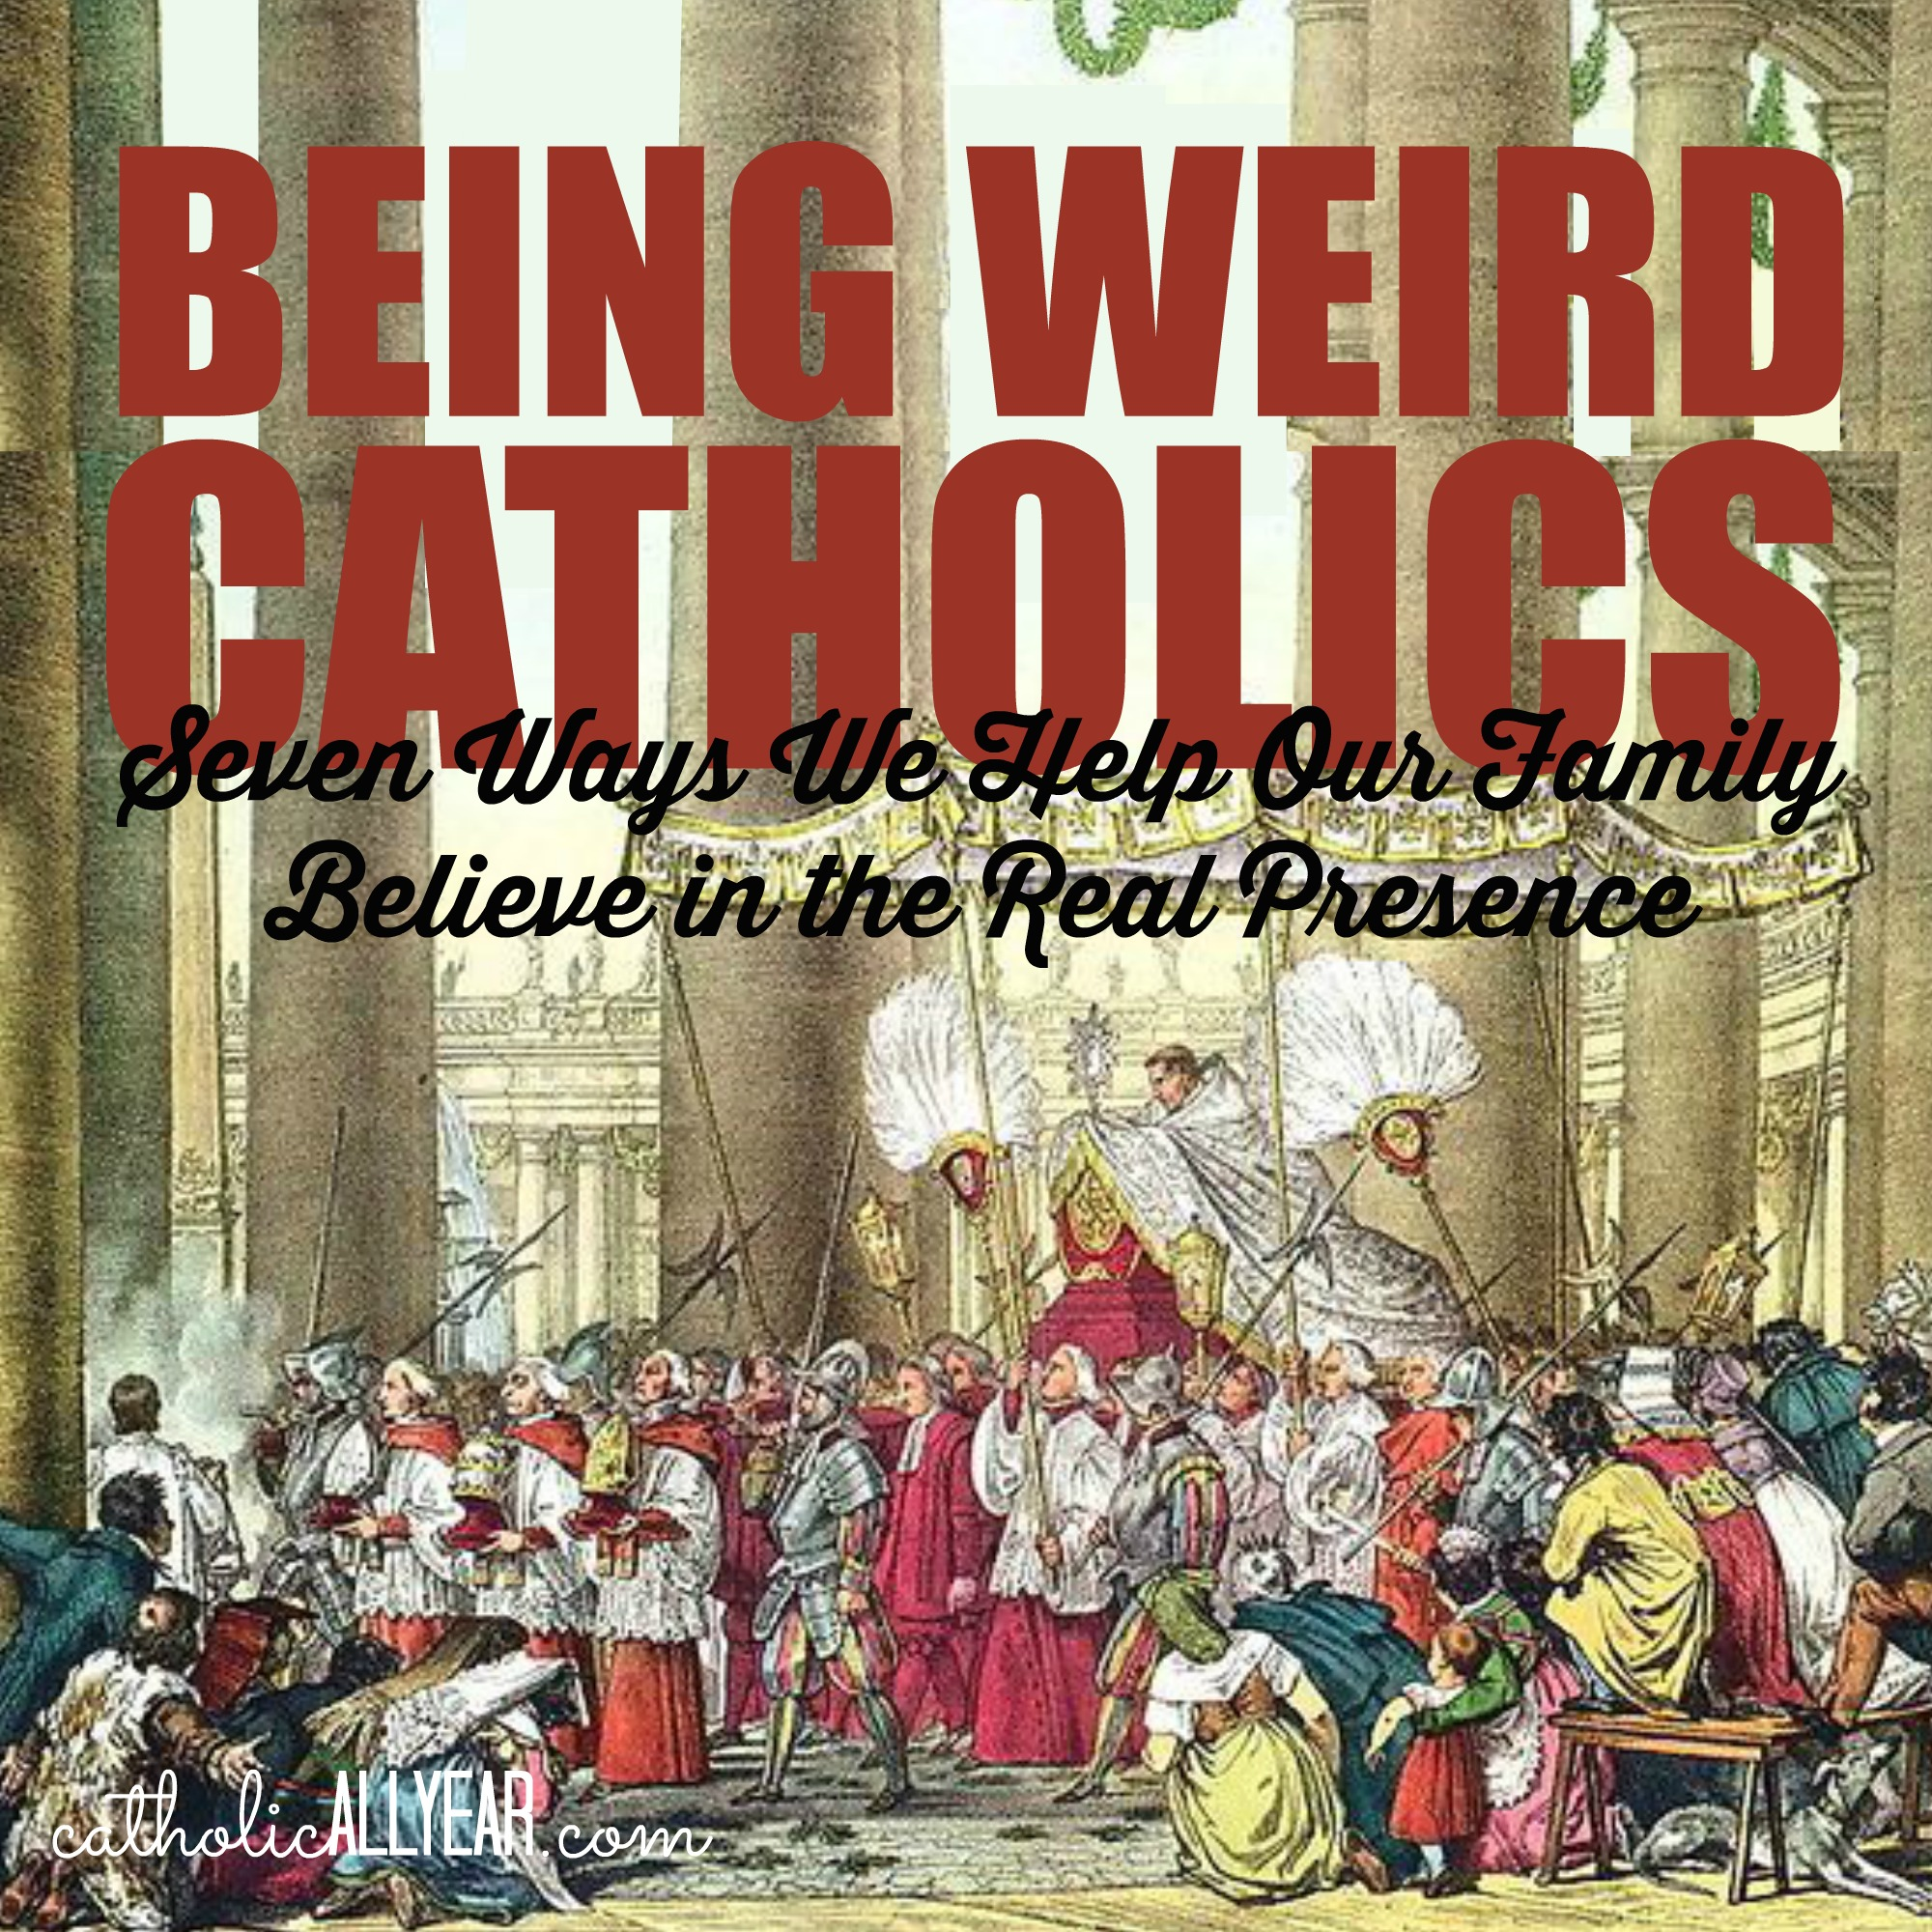 Being Weird Catholics: Seven Ways We Help Our Family Believe in the Real Presence